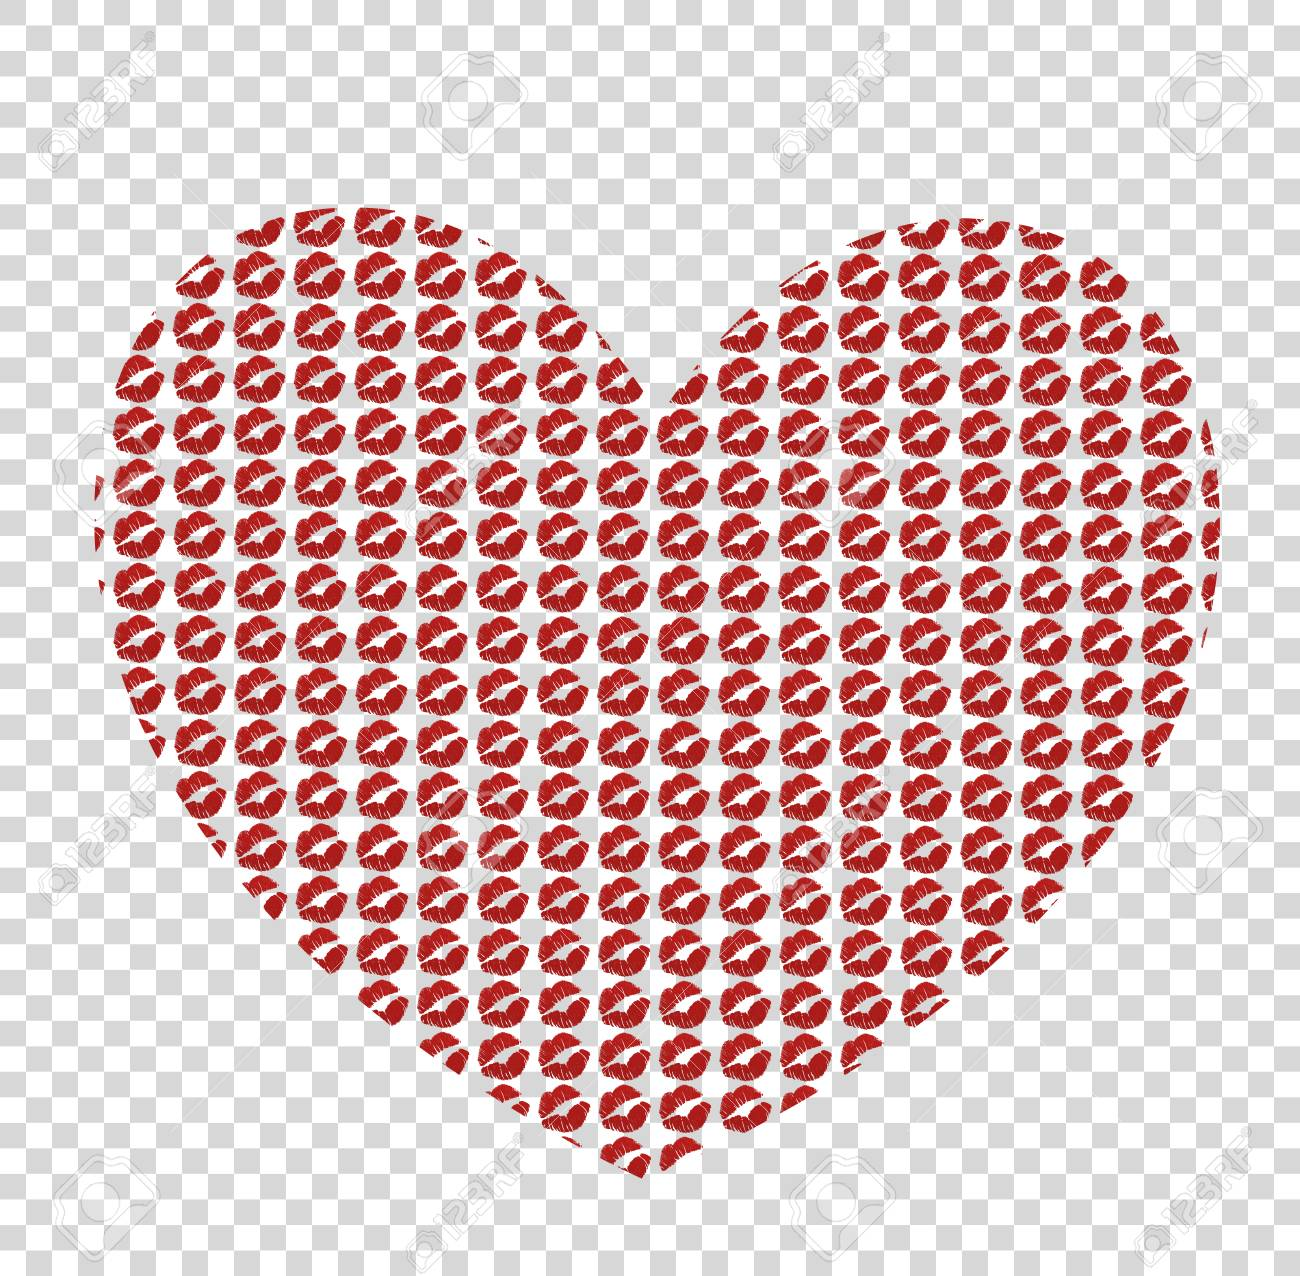 big red heart made of kissmarks isolated on transparent background